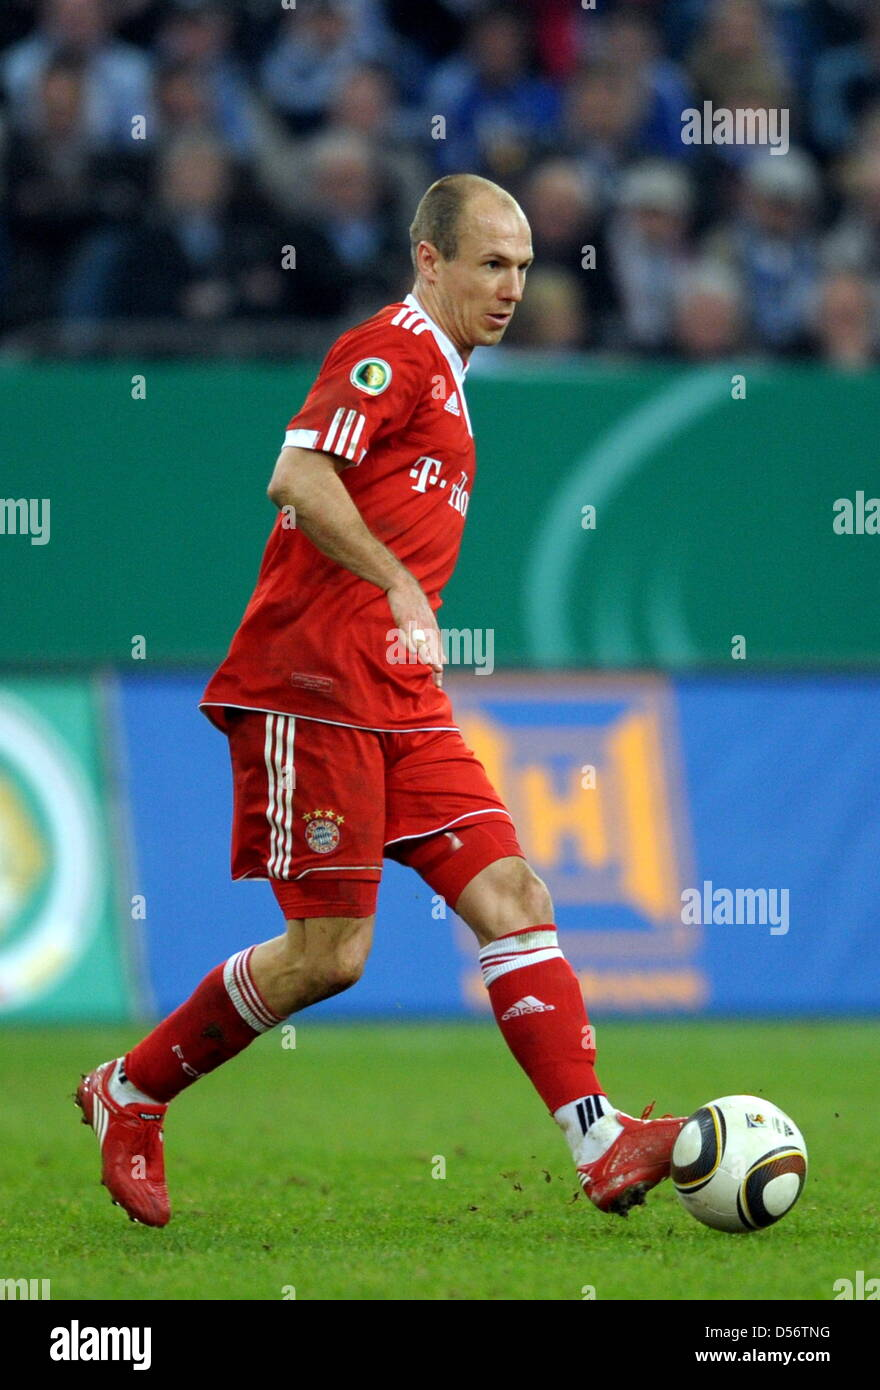 Munich s Arjen Robben in action during the DFB Cup match FC